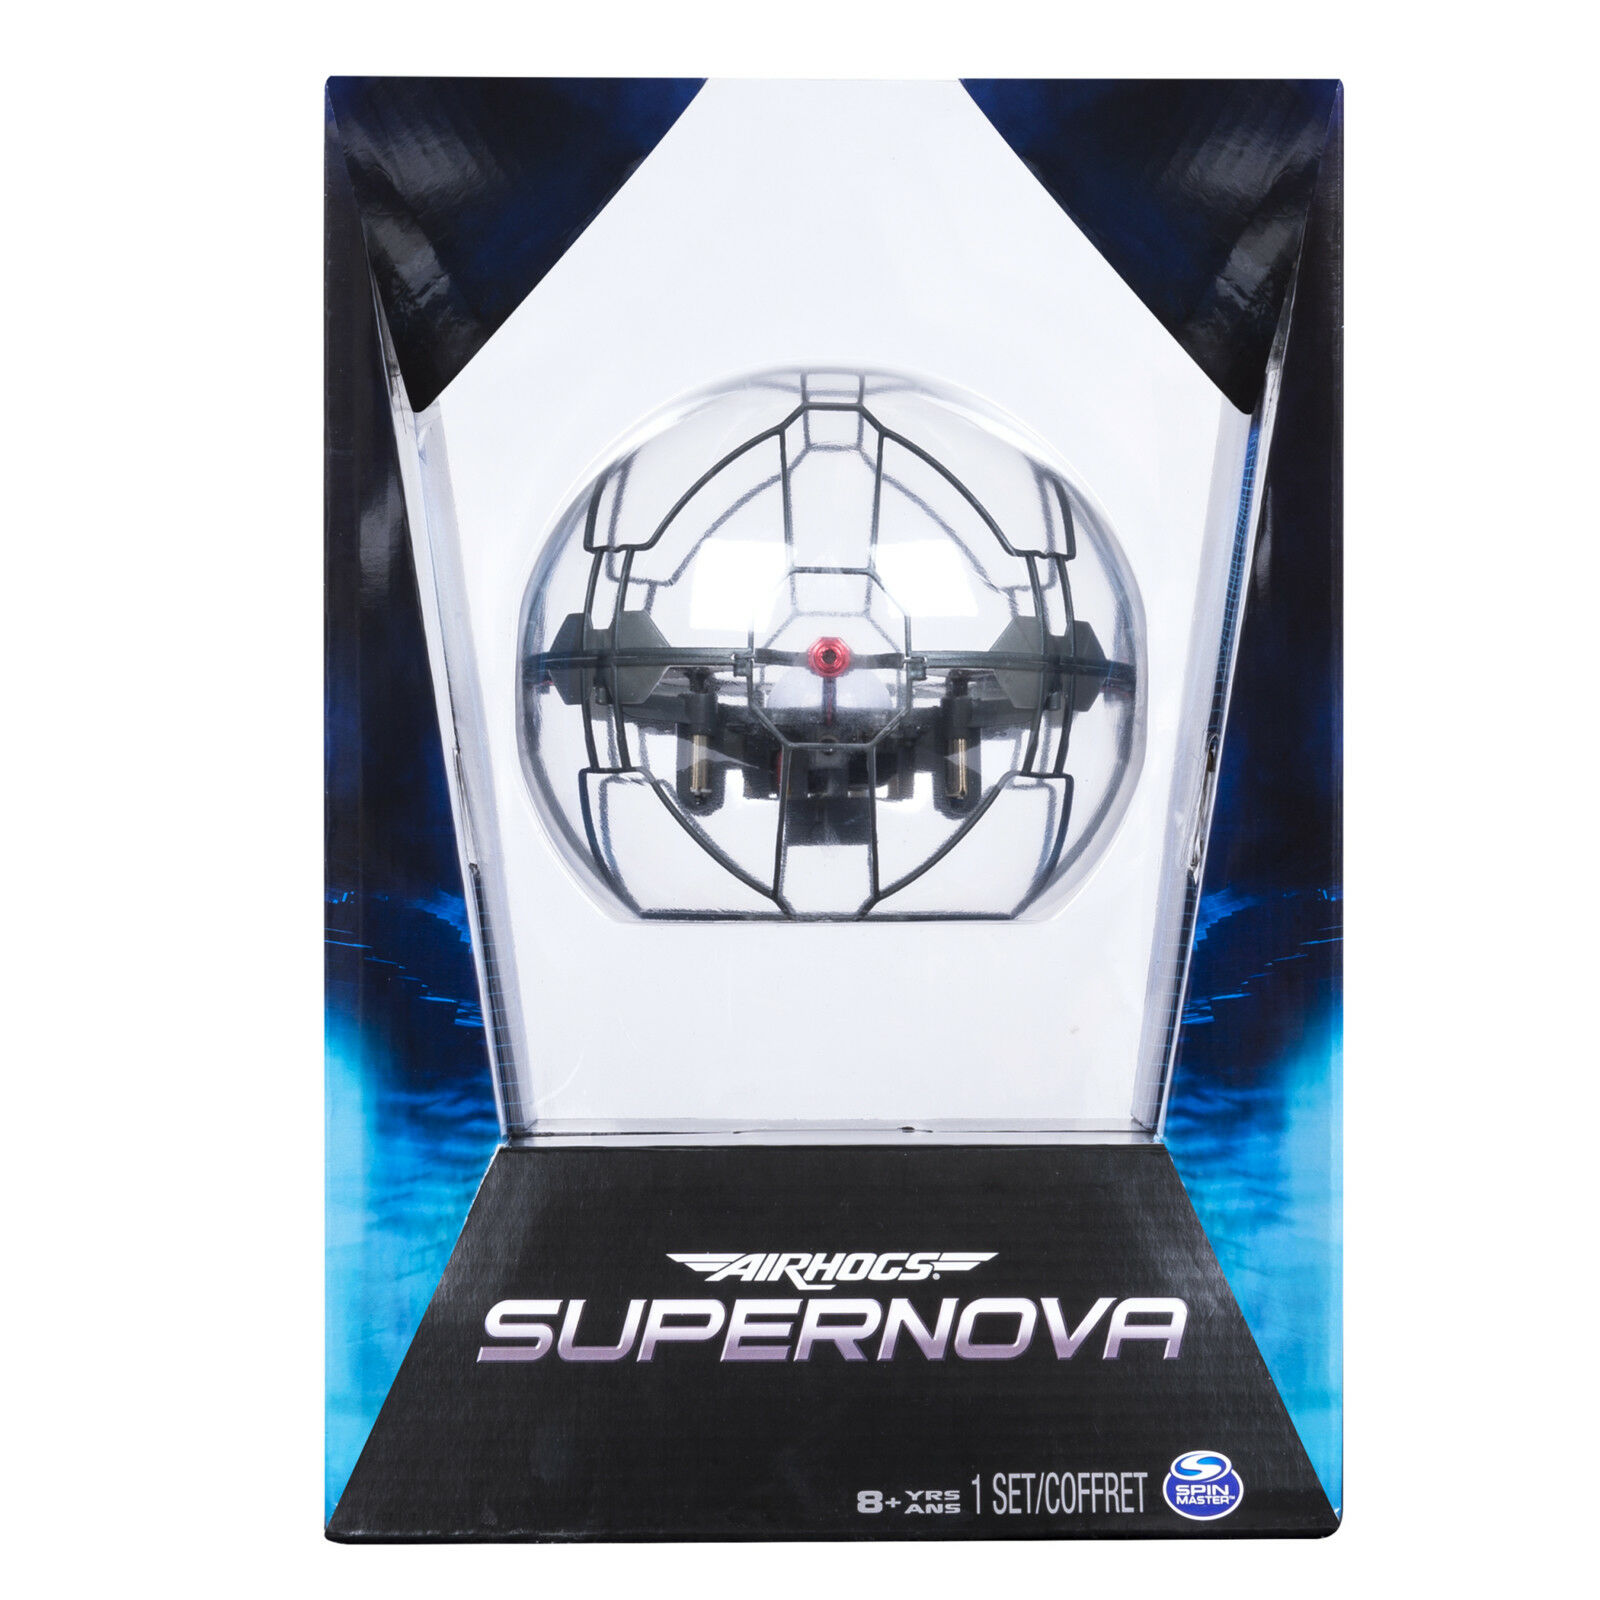 Air Hogs Supernova, Gravity Defying He-Controlled Flying Orb,  for Ages 8+  vendita outlet